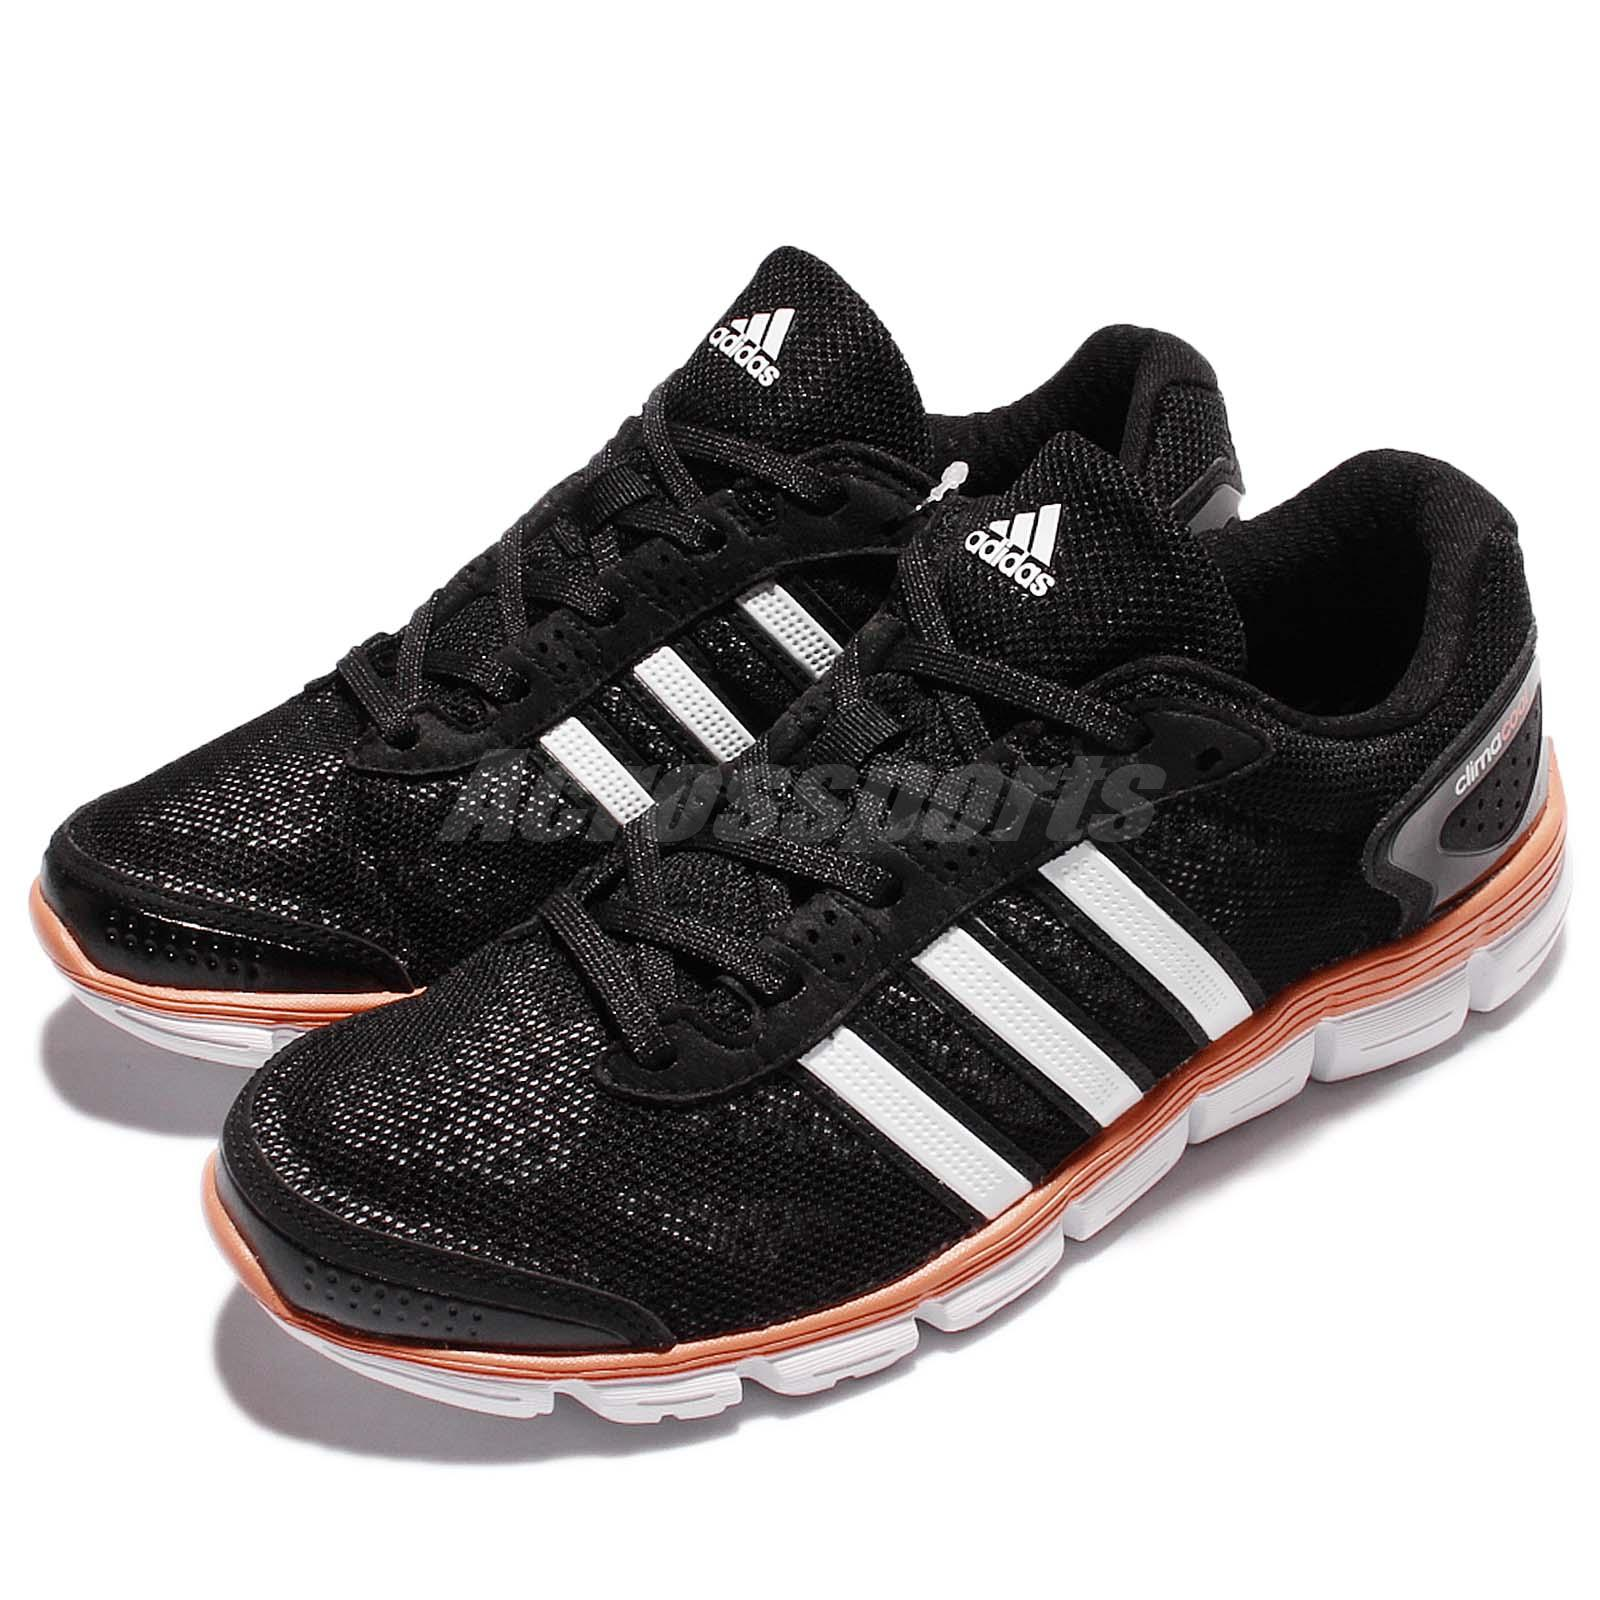 867521fae798e Details about 50% Off adidas CC Fresh W Climacool Black Orange Women Running  Shoes S76762